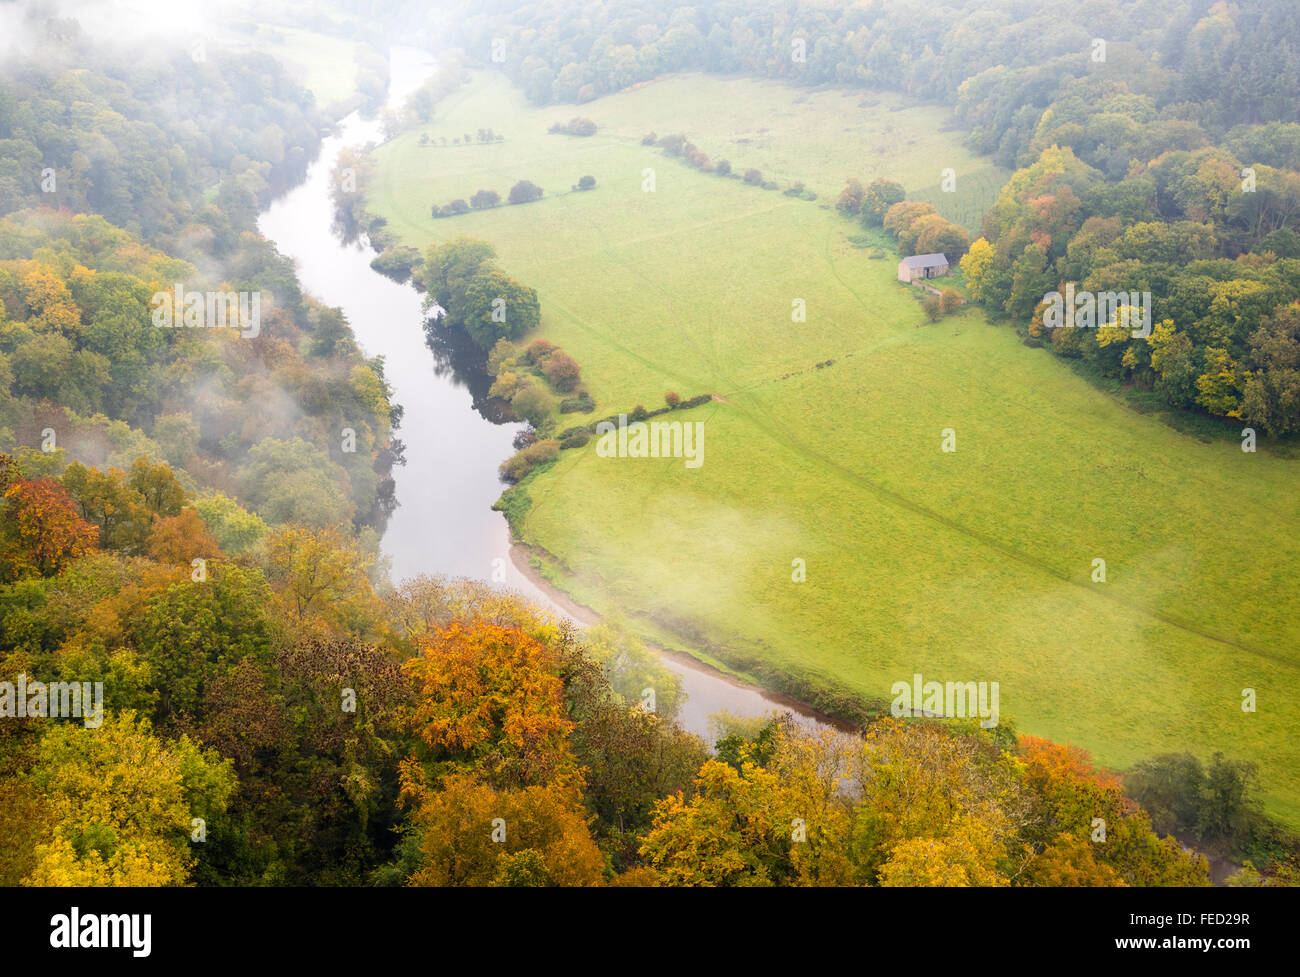 The view towards Ross-on-Wye from Symonds Yat Rock, a popular tourist destination in the Forest of Dean, Gloucestershire, - Stock Image